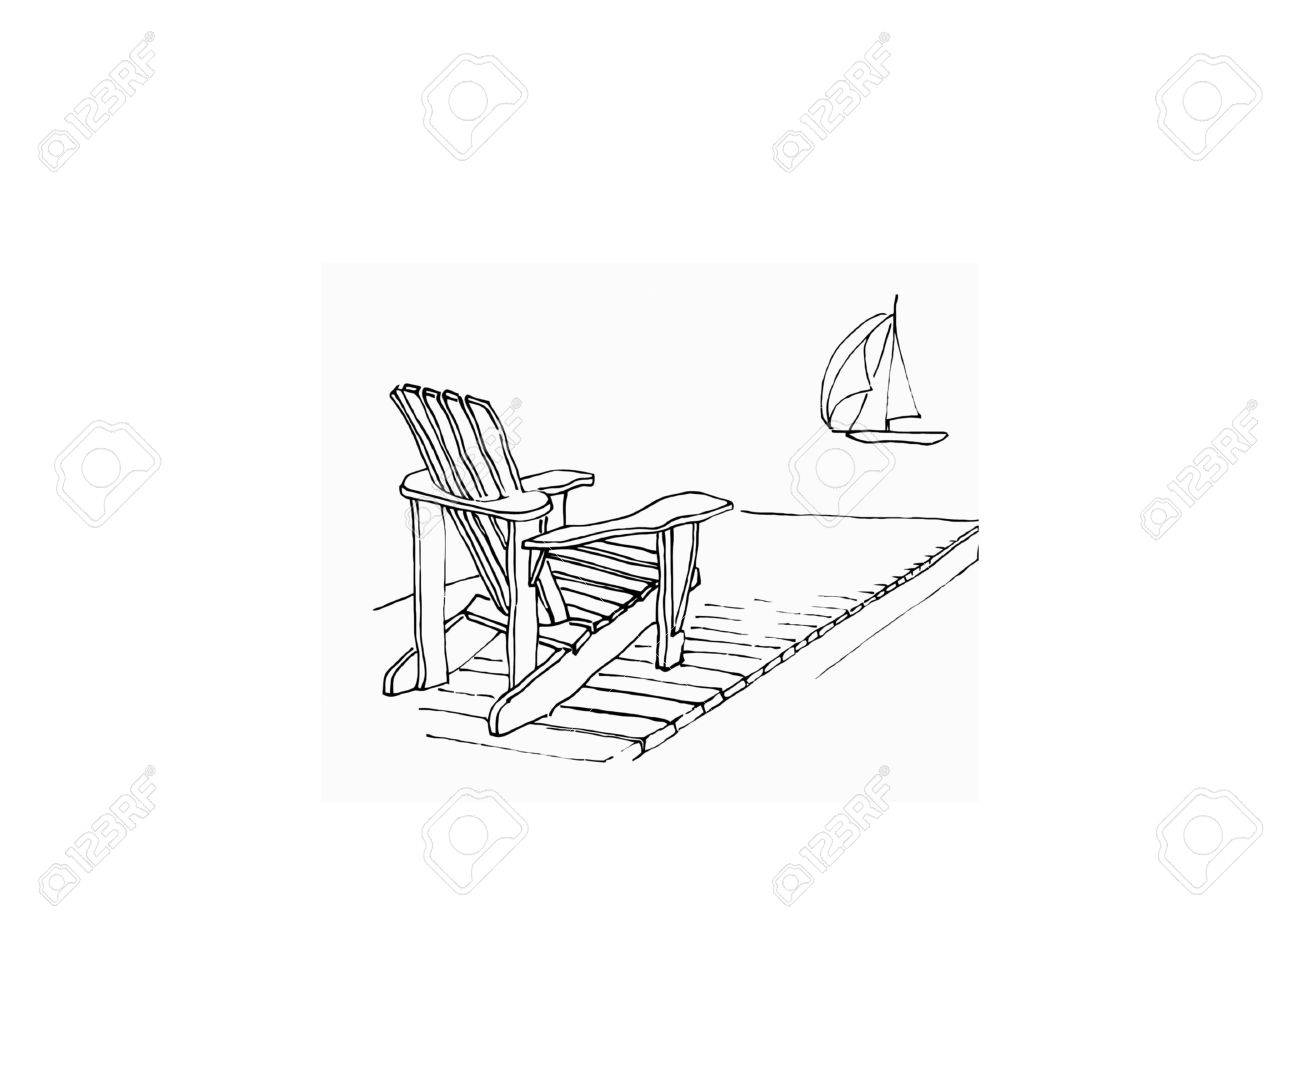 1300x1066 Marker Sketch Of Adirondack Chair On Dock With Sailing Boat